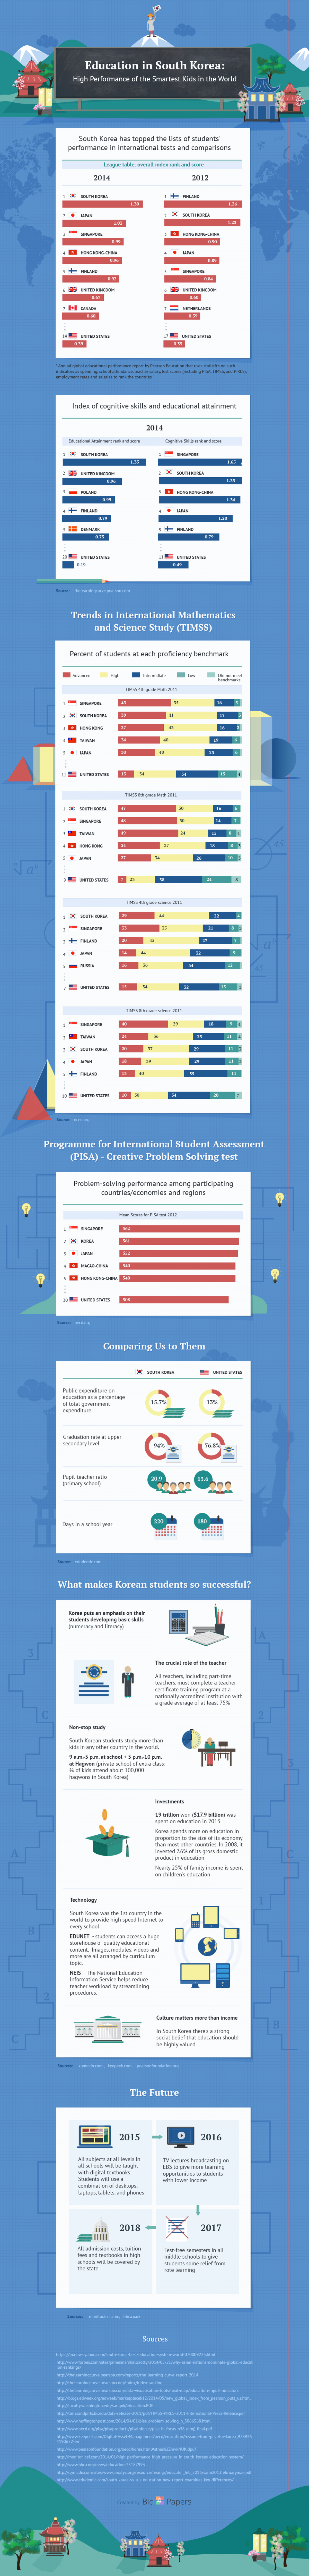 Education in South Korea: High Performance of the Smartest Kids in the World Infographic